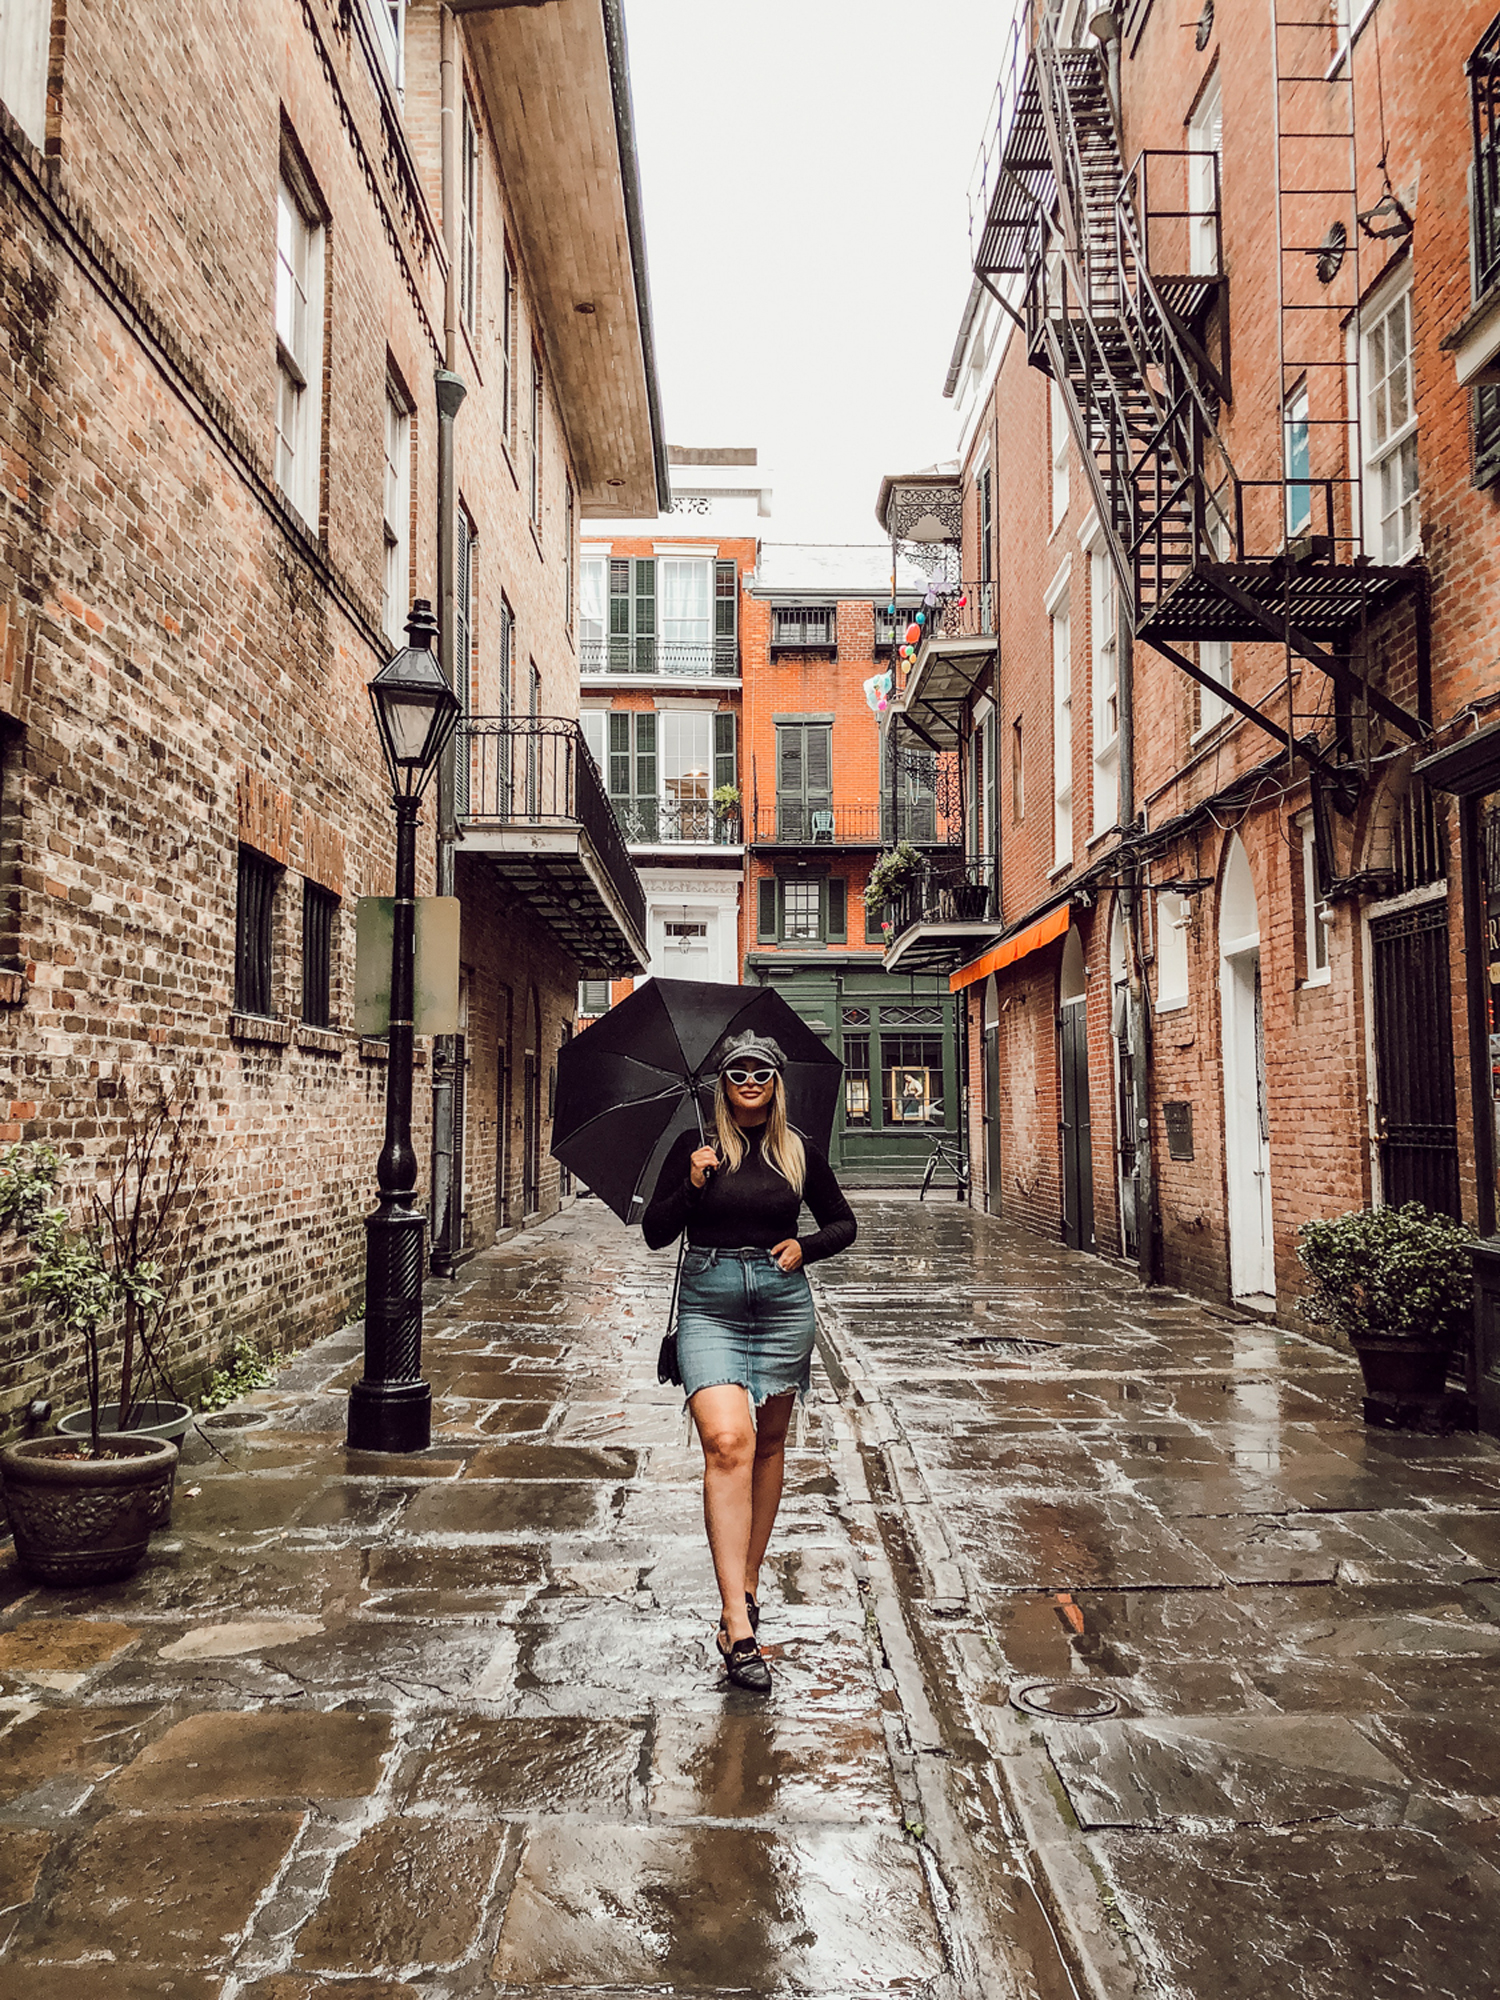 Tessa with sunglasses holding umbrella in Nola alley